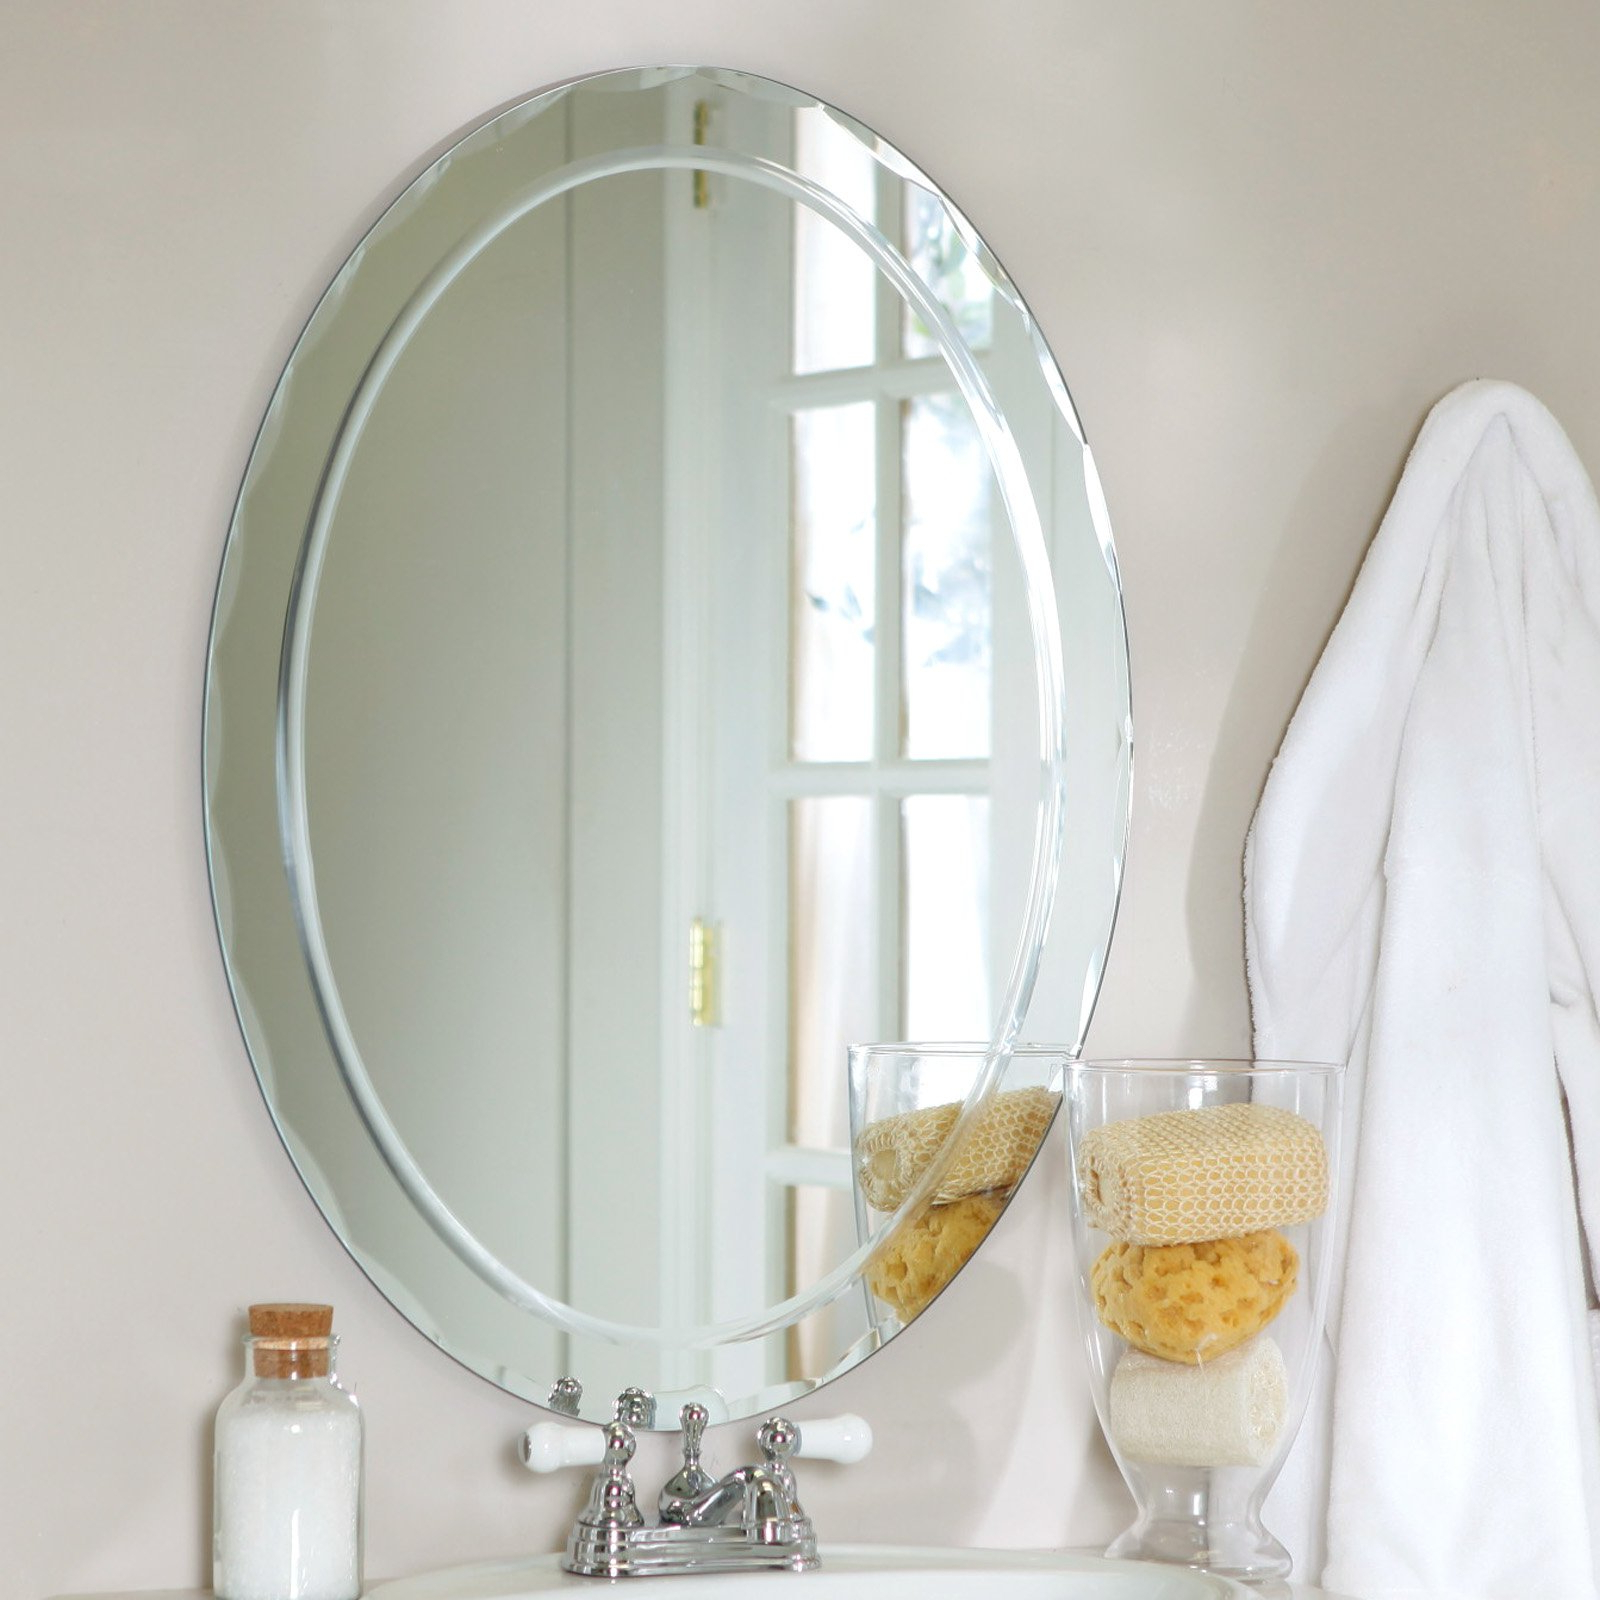 Astonishing Beveled Wall Mirror Bathroom Tiles Strips Lighted Glass Inside Best And Newest Frameless Beveled Wall Mirrors (View 19 of 20)